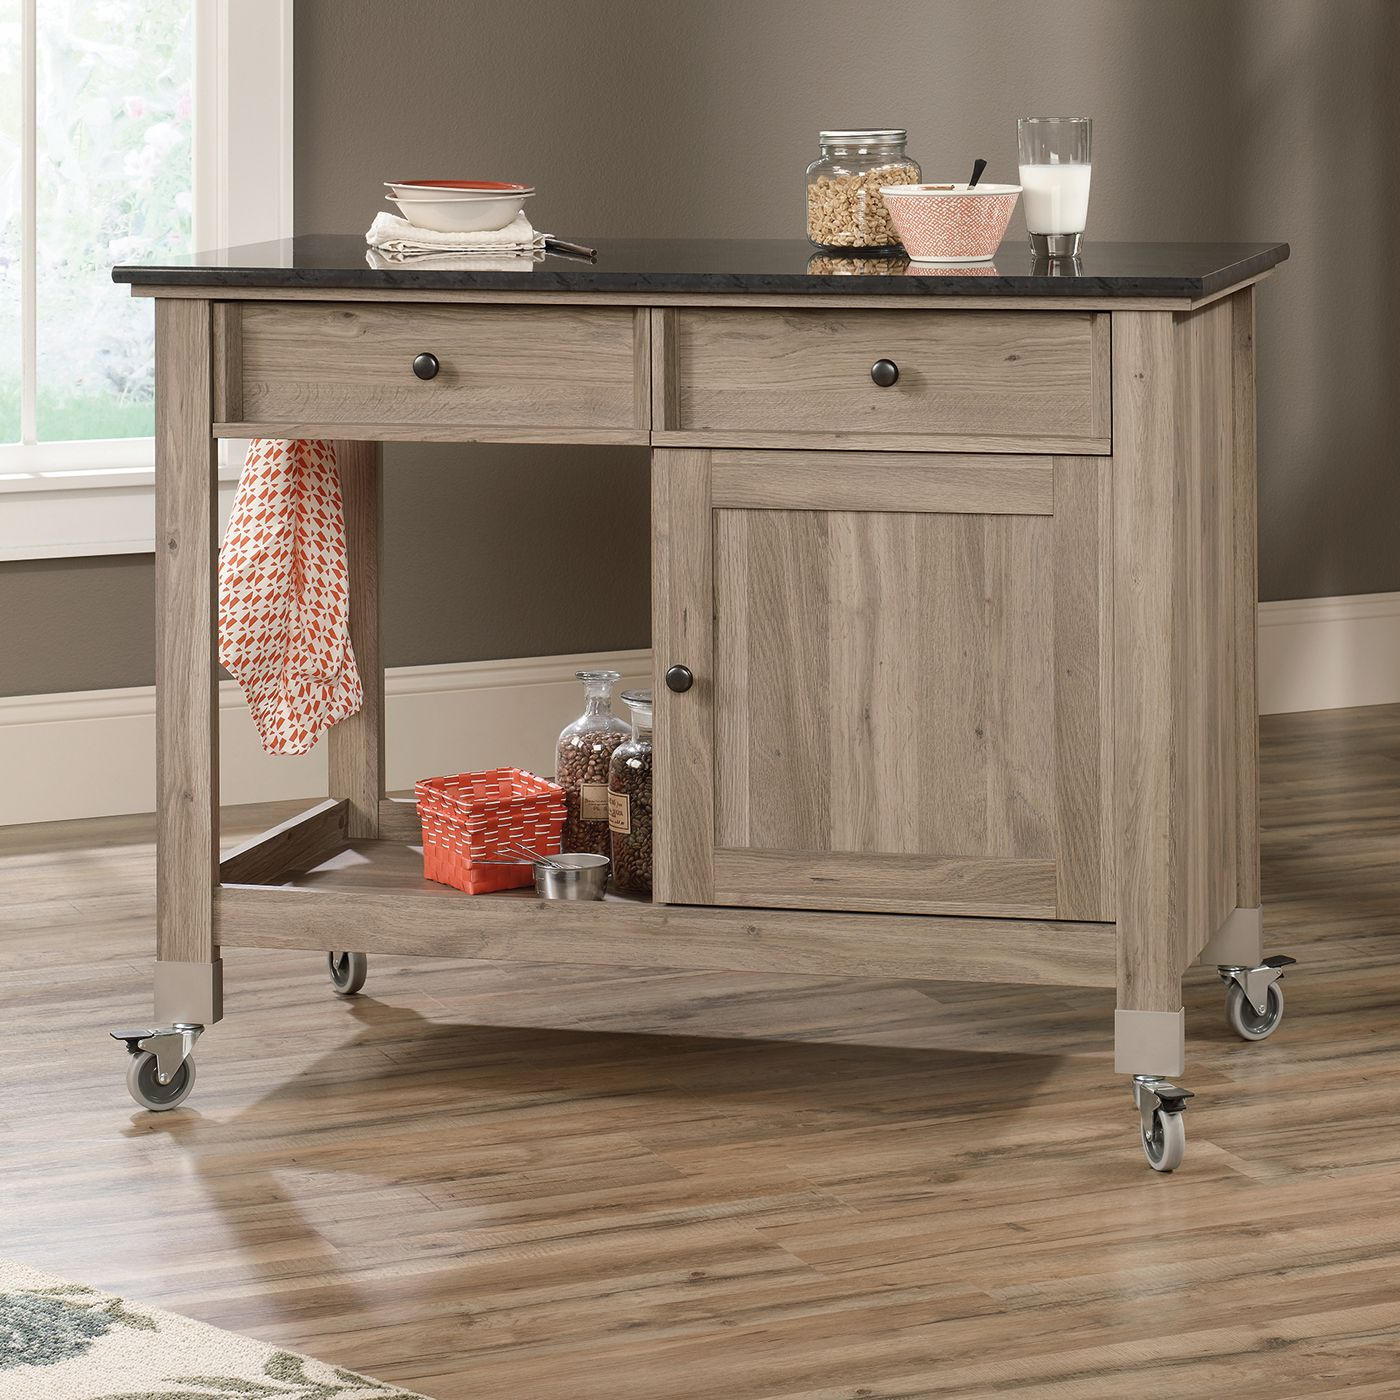 need a little extra counter space wishing for more storage a mobile kitchen island rolls in on kitchen island ideas kids id=43604